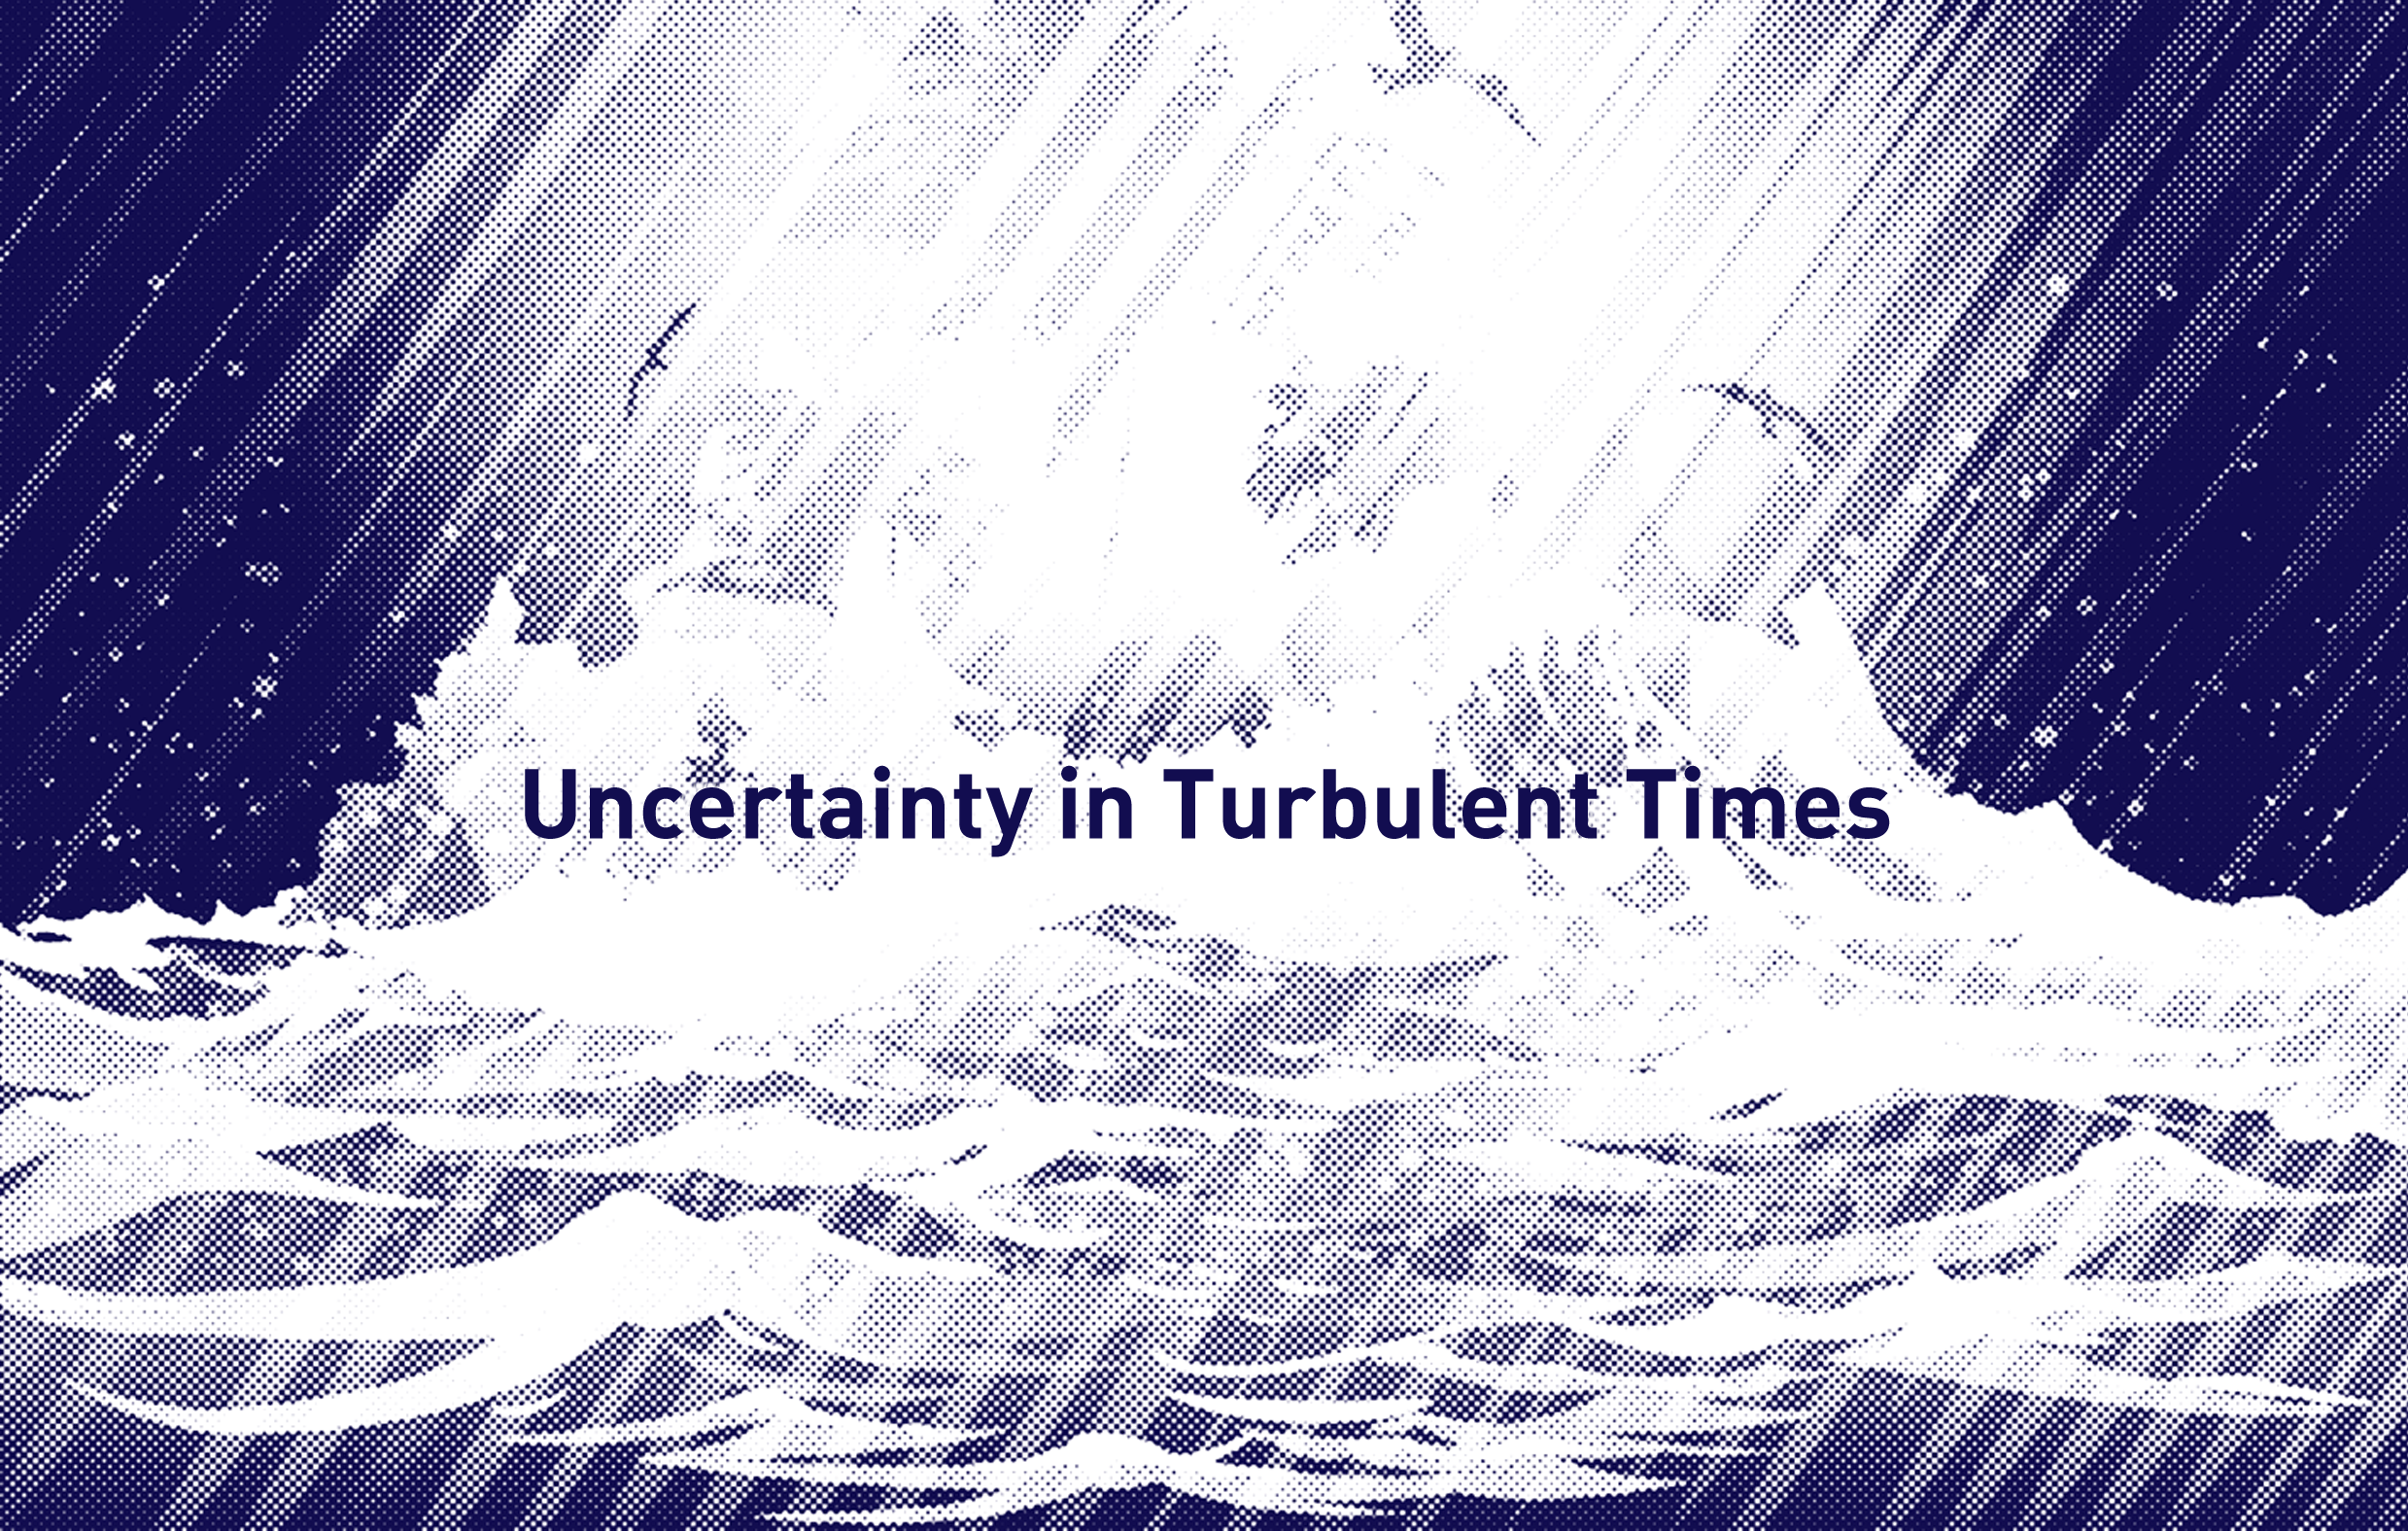 Uncertainty in Turbulent Times